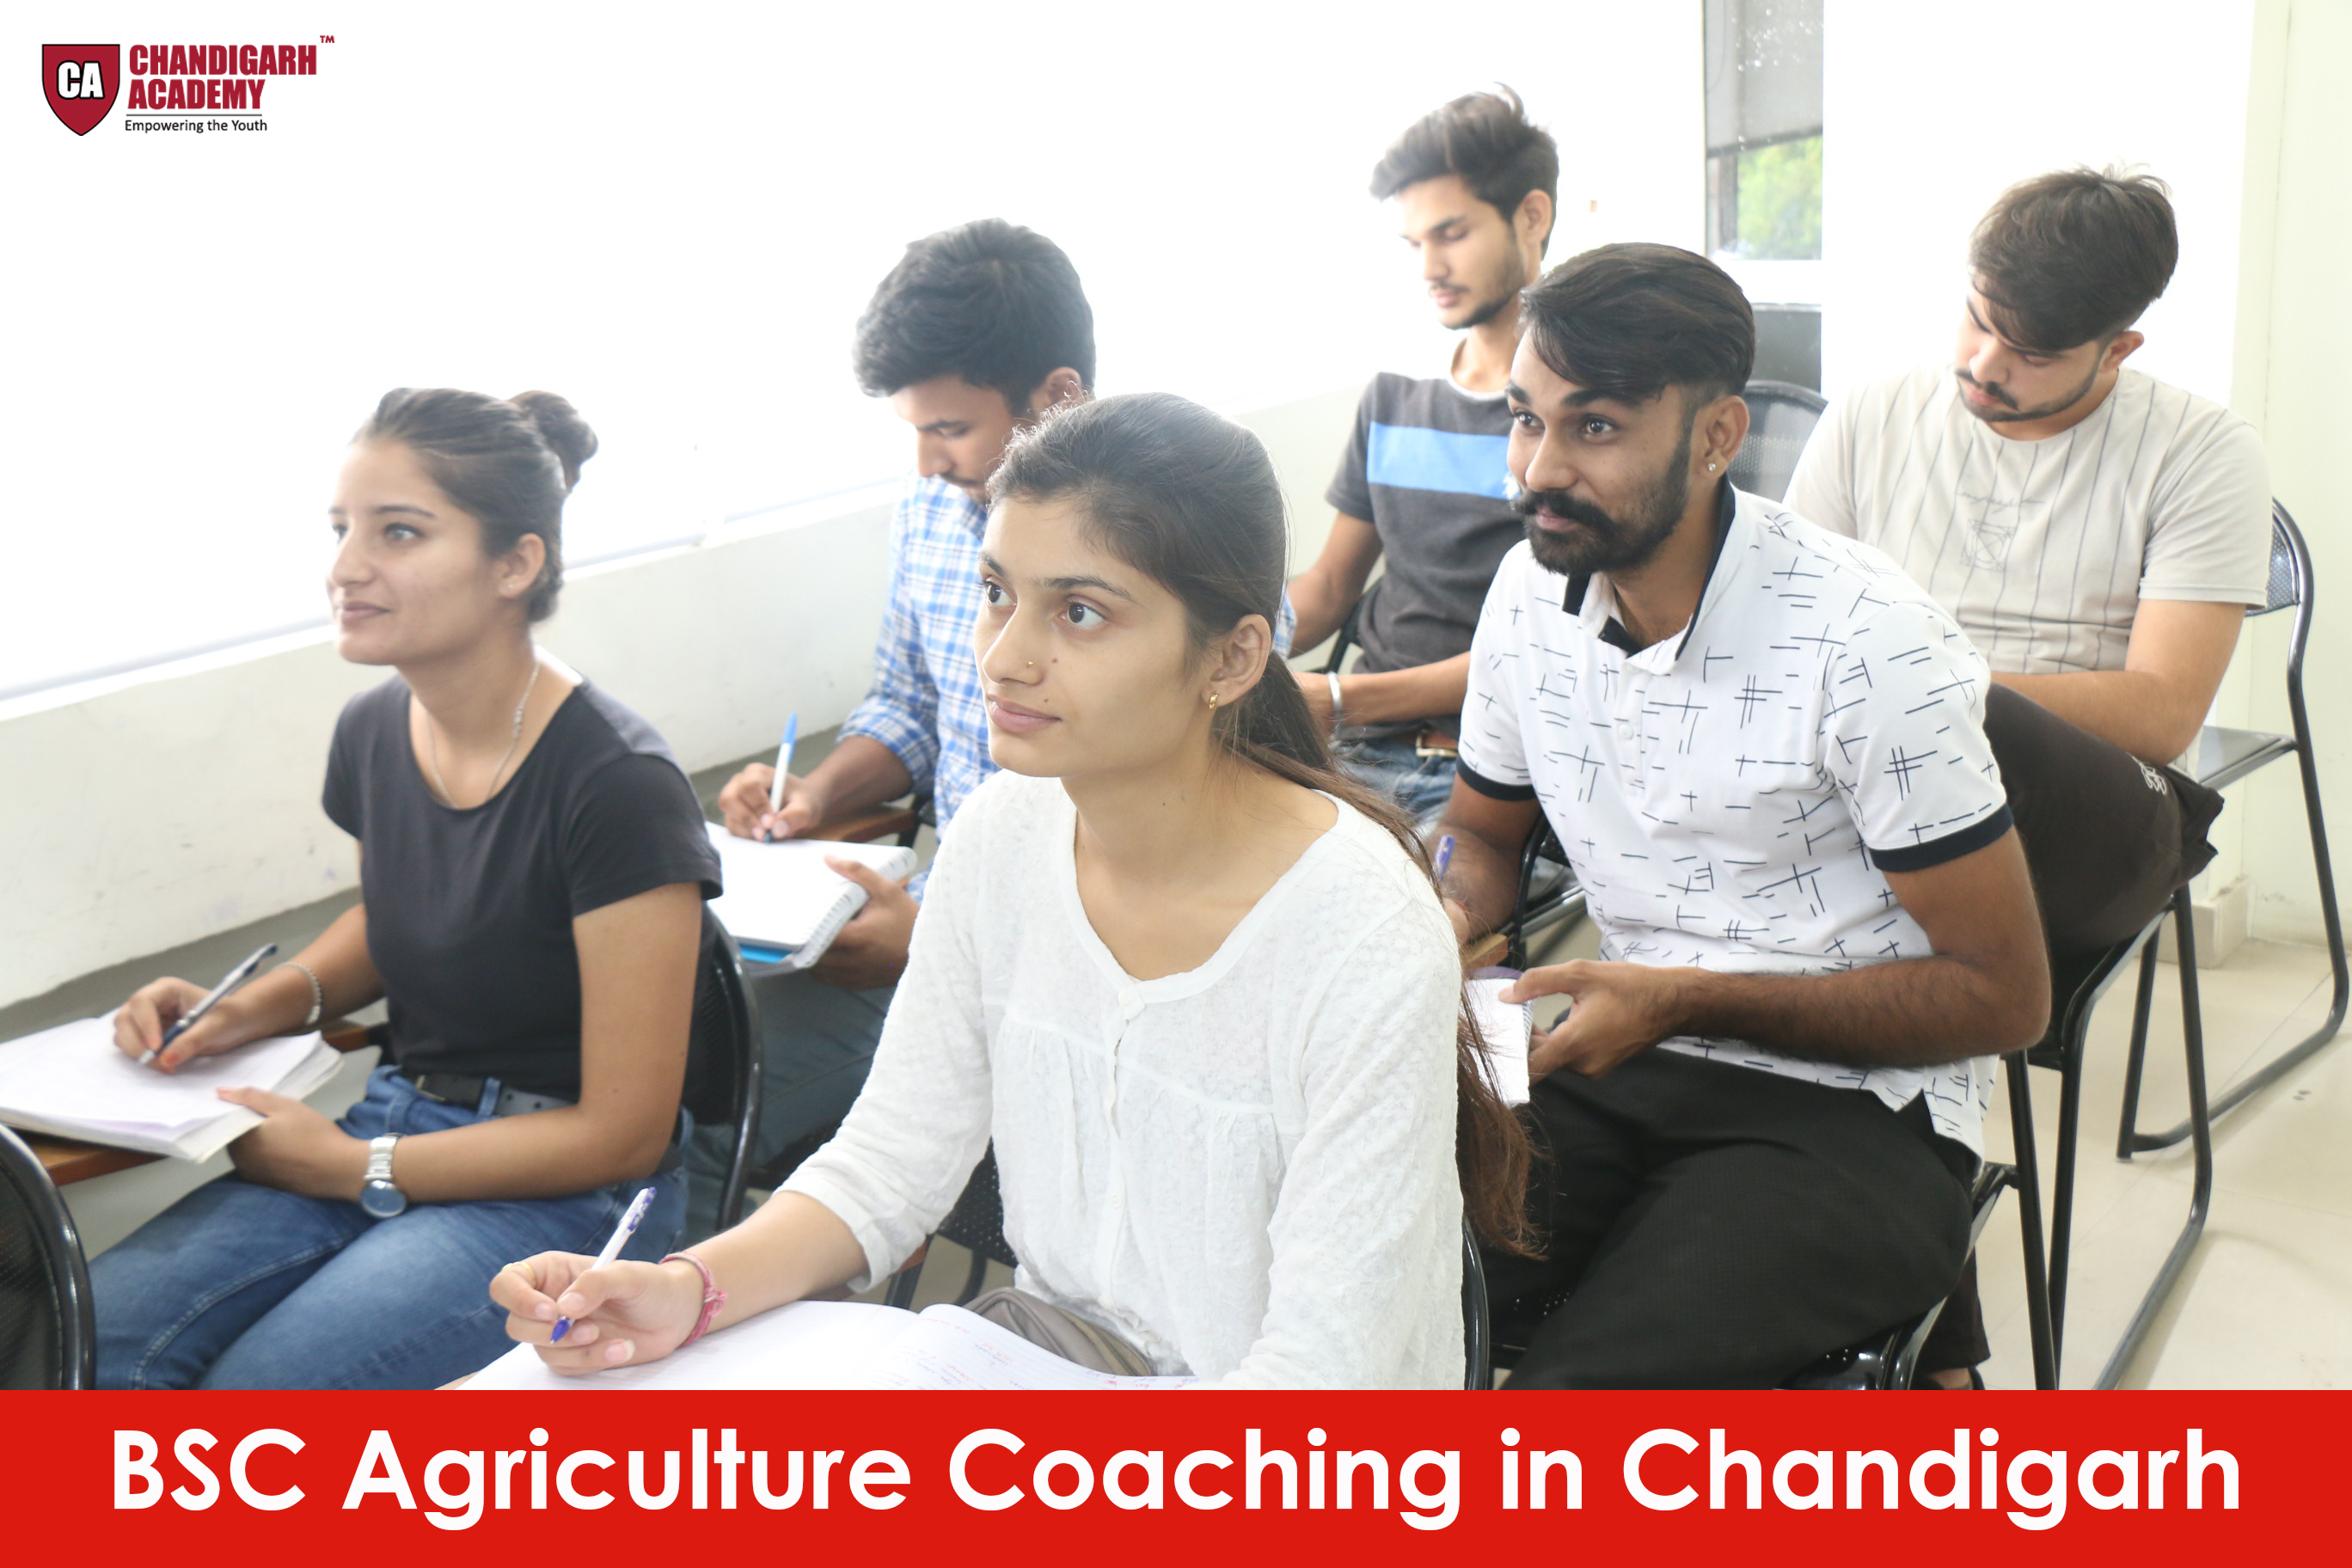 BSC Agriculture Coaching in Chandigarh